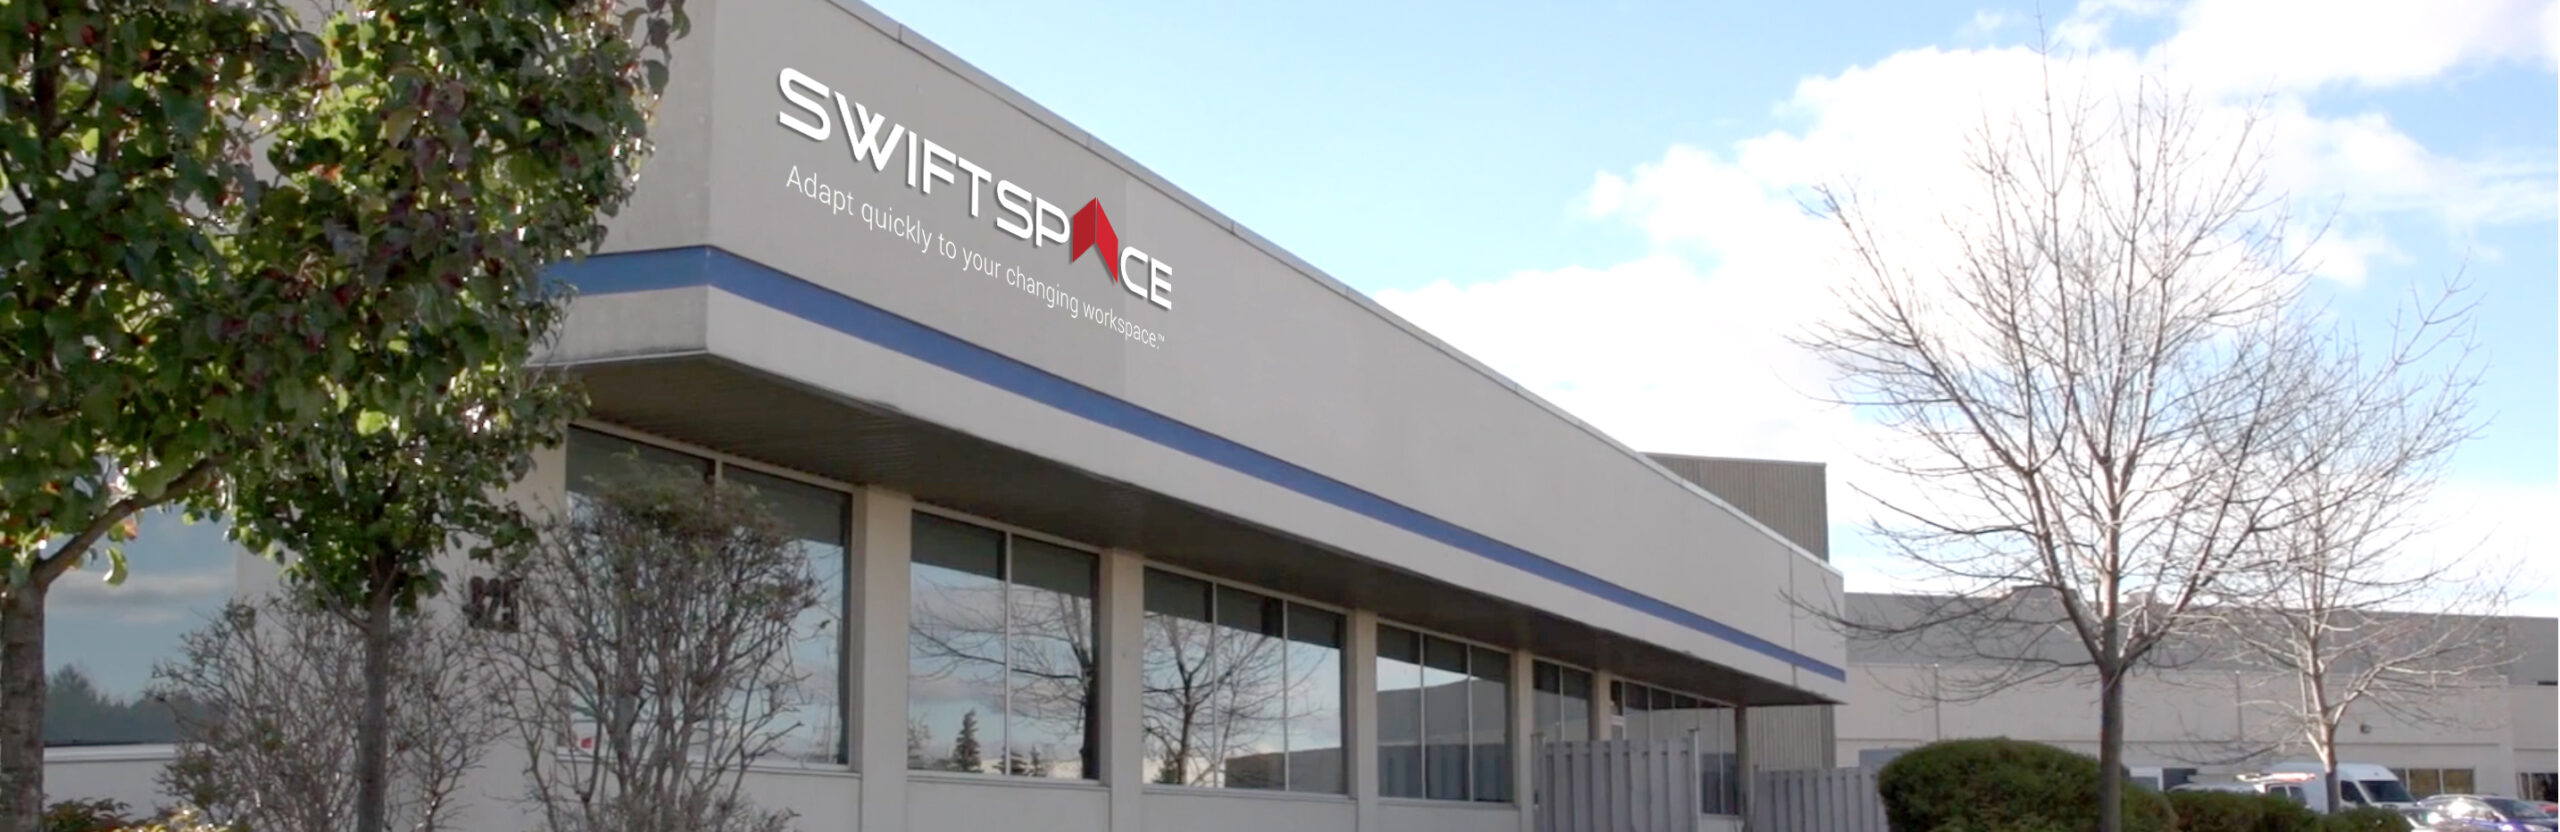 Swiftspace-building2